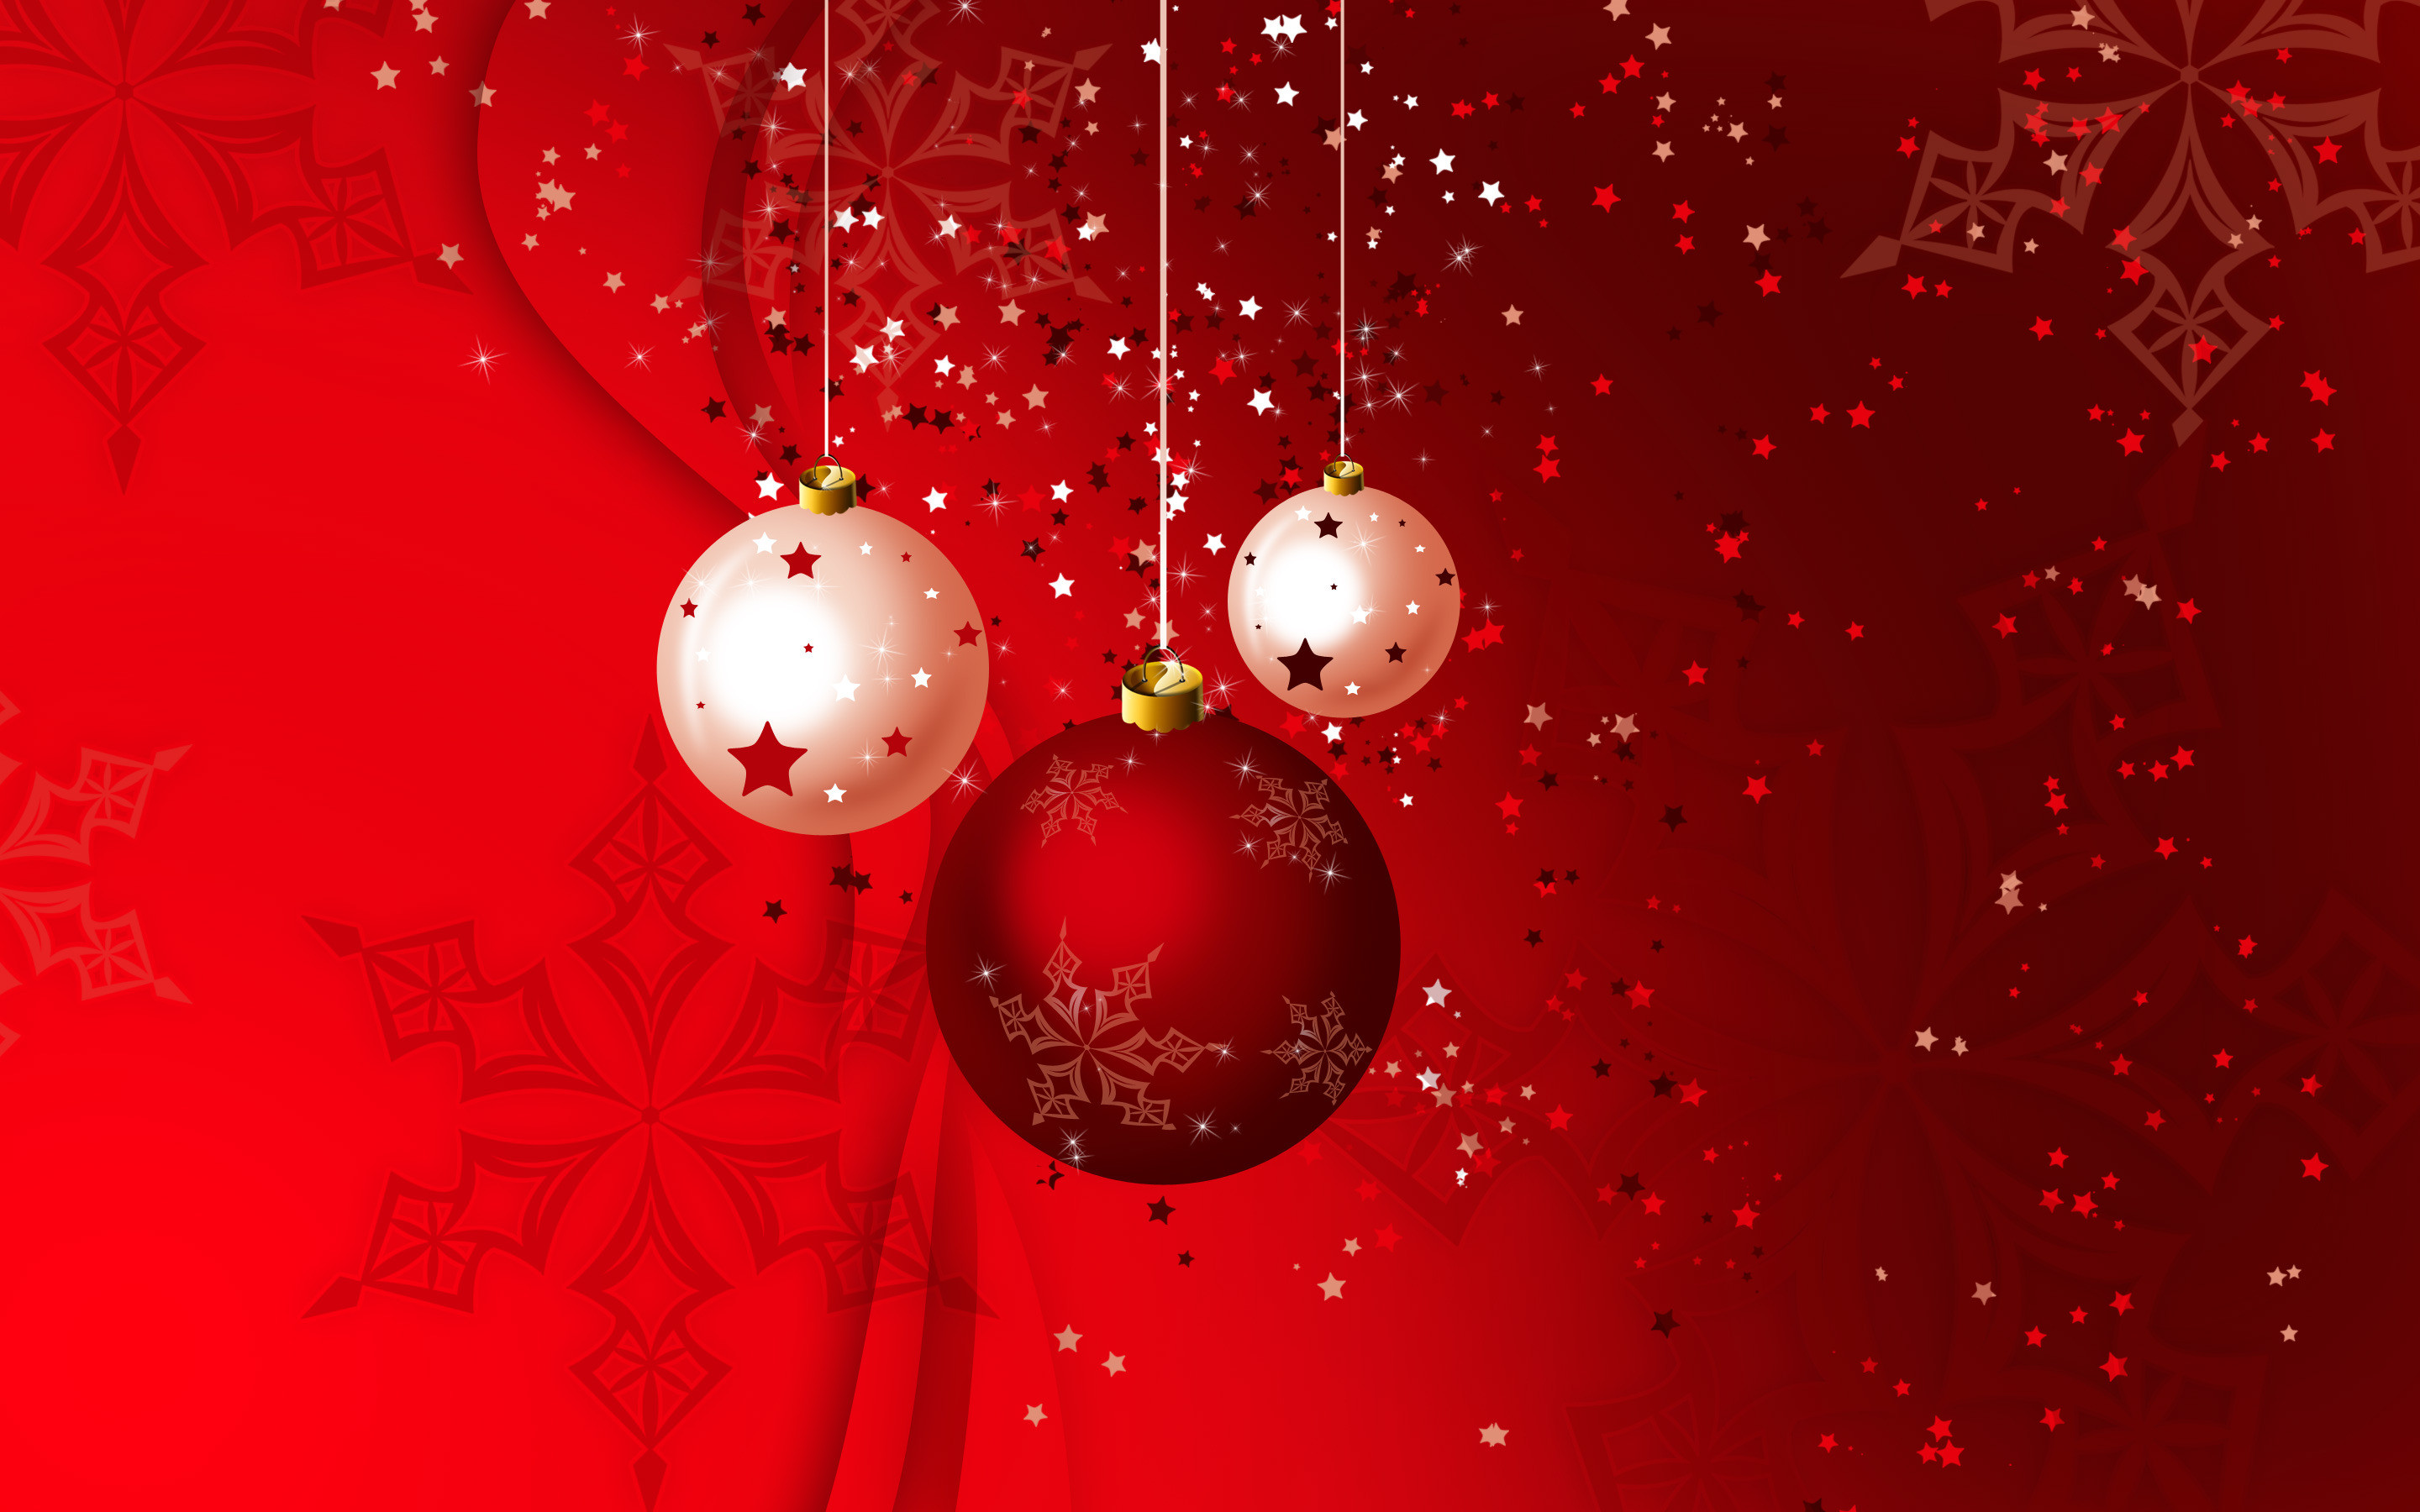 Red Christmas Backgrounds 43 Images